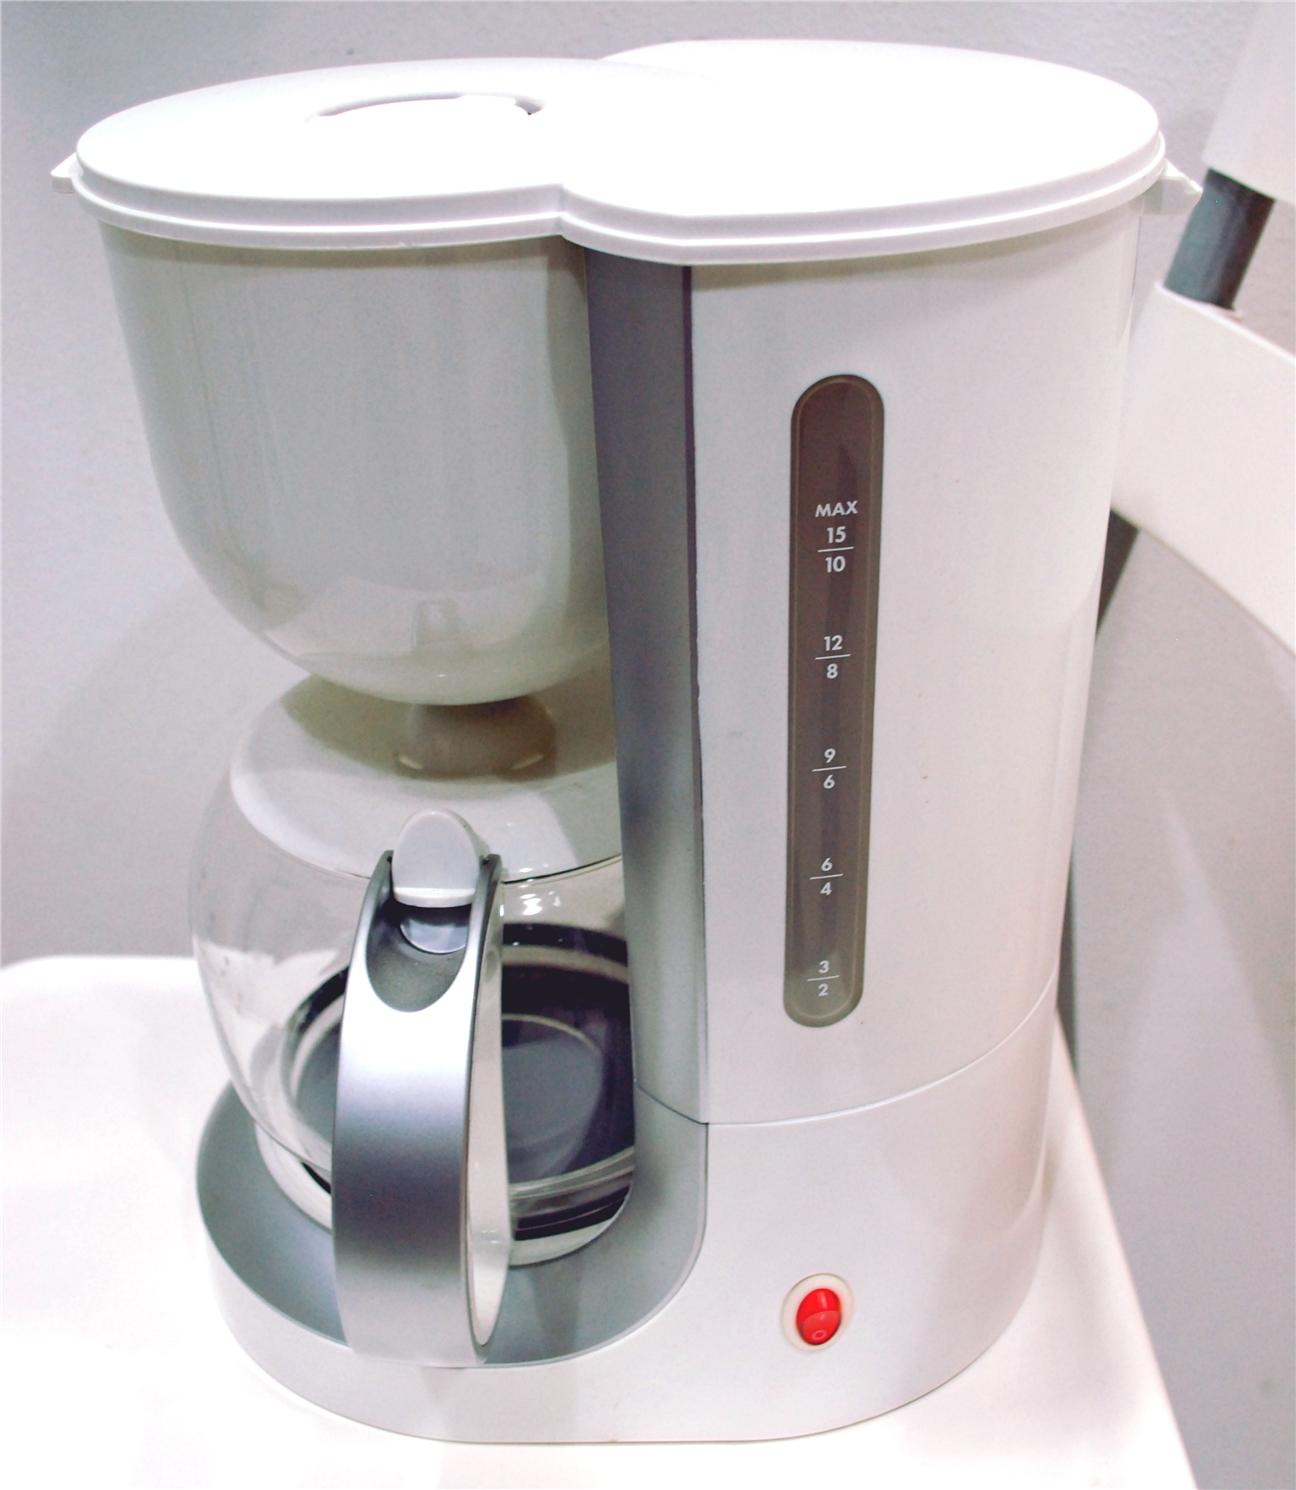 Electrolux Expressionist Thermal Coffee Maker - wordscat.com